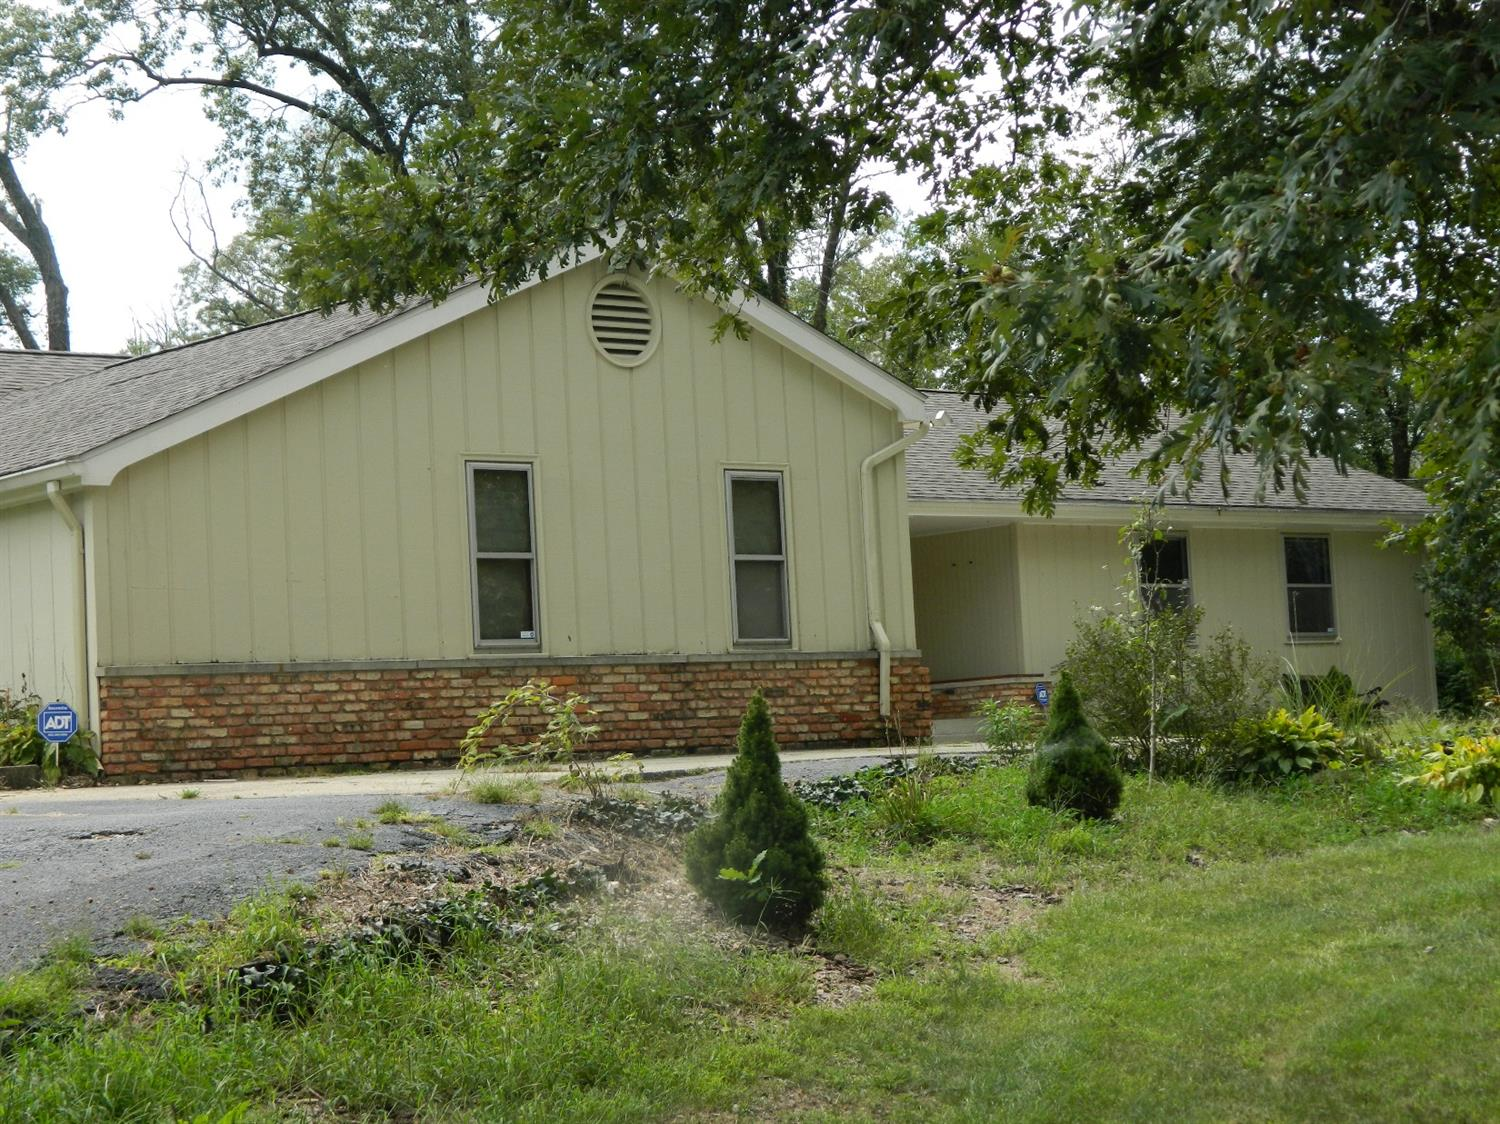 Ranch/1 Sty/Bungalow, Single Family Detach - DeMotte, IN (photo 5)